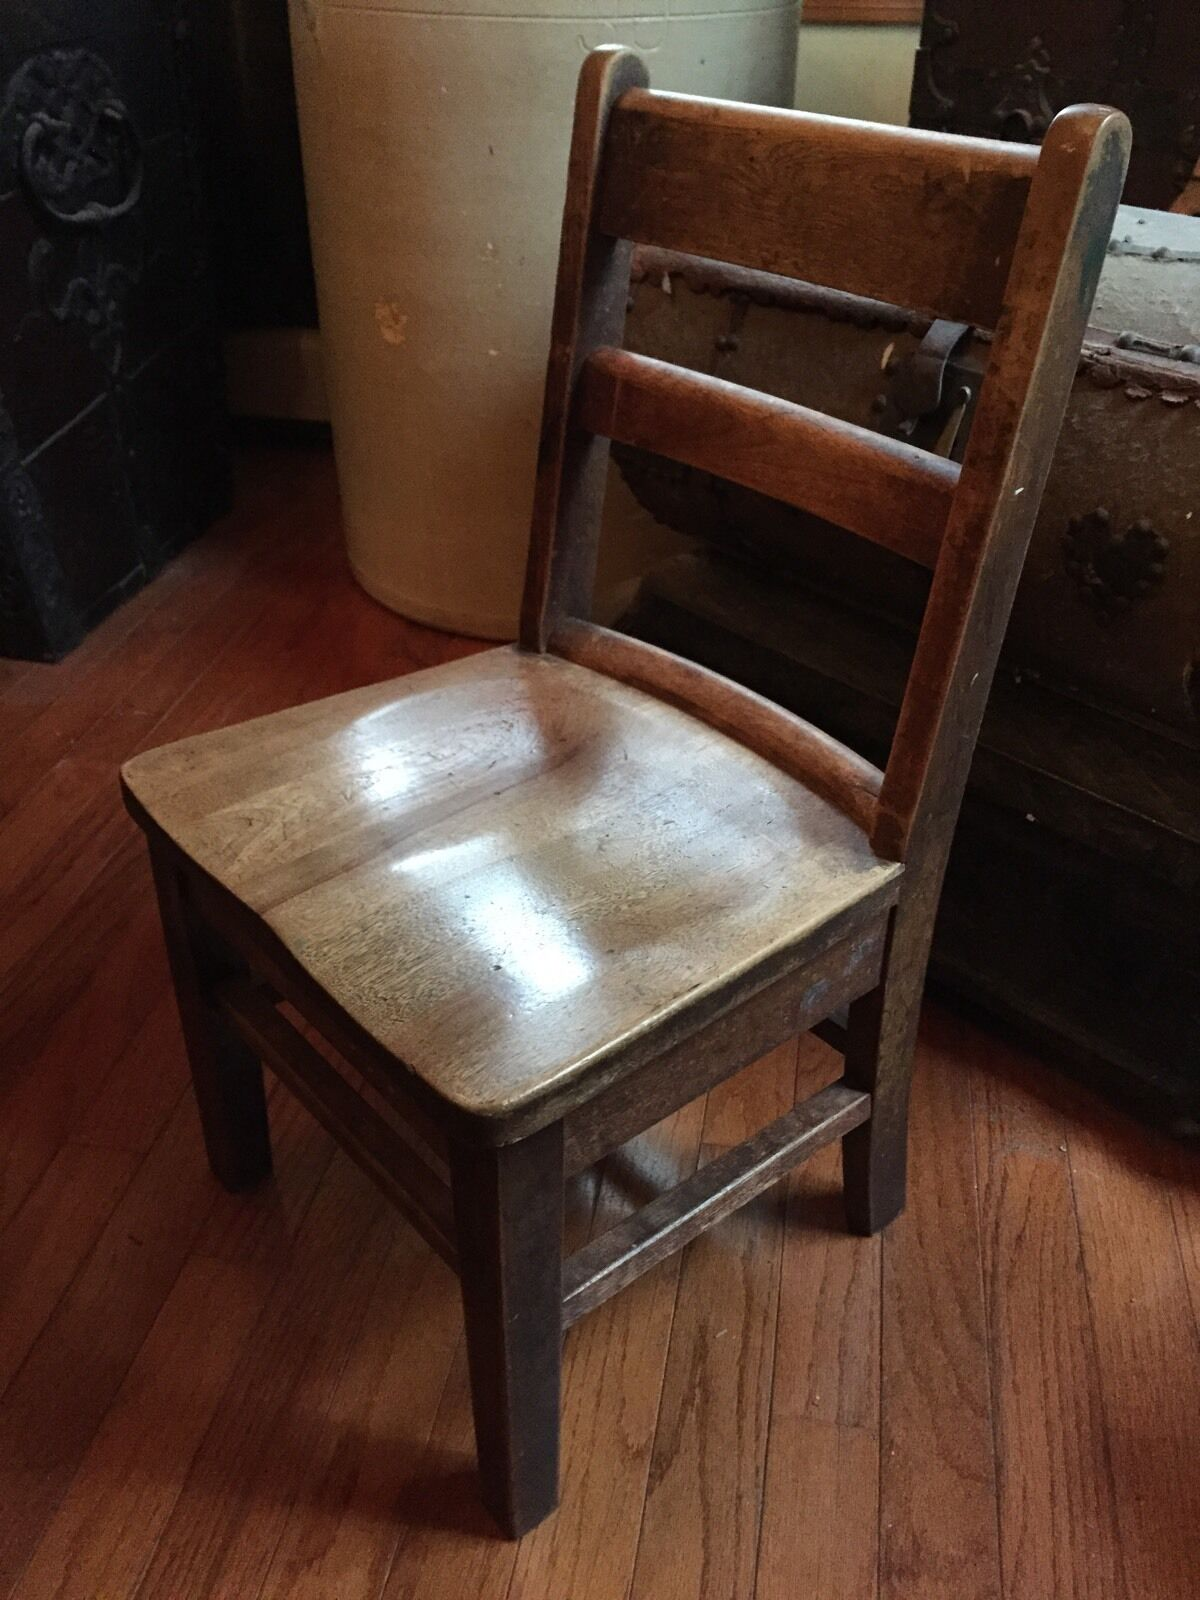 Antique School Chair 1 of 1Only 1 available ... - ANTIQUE SCHOOL CHAIR - $35.00 PicClick